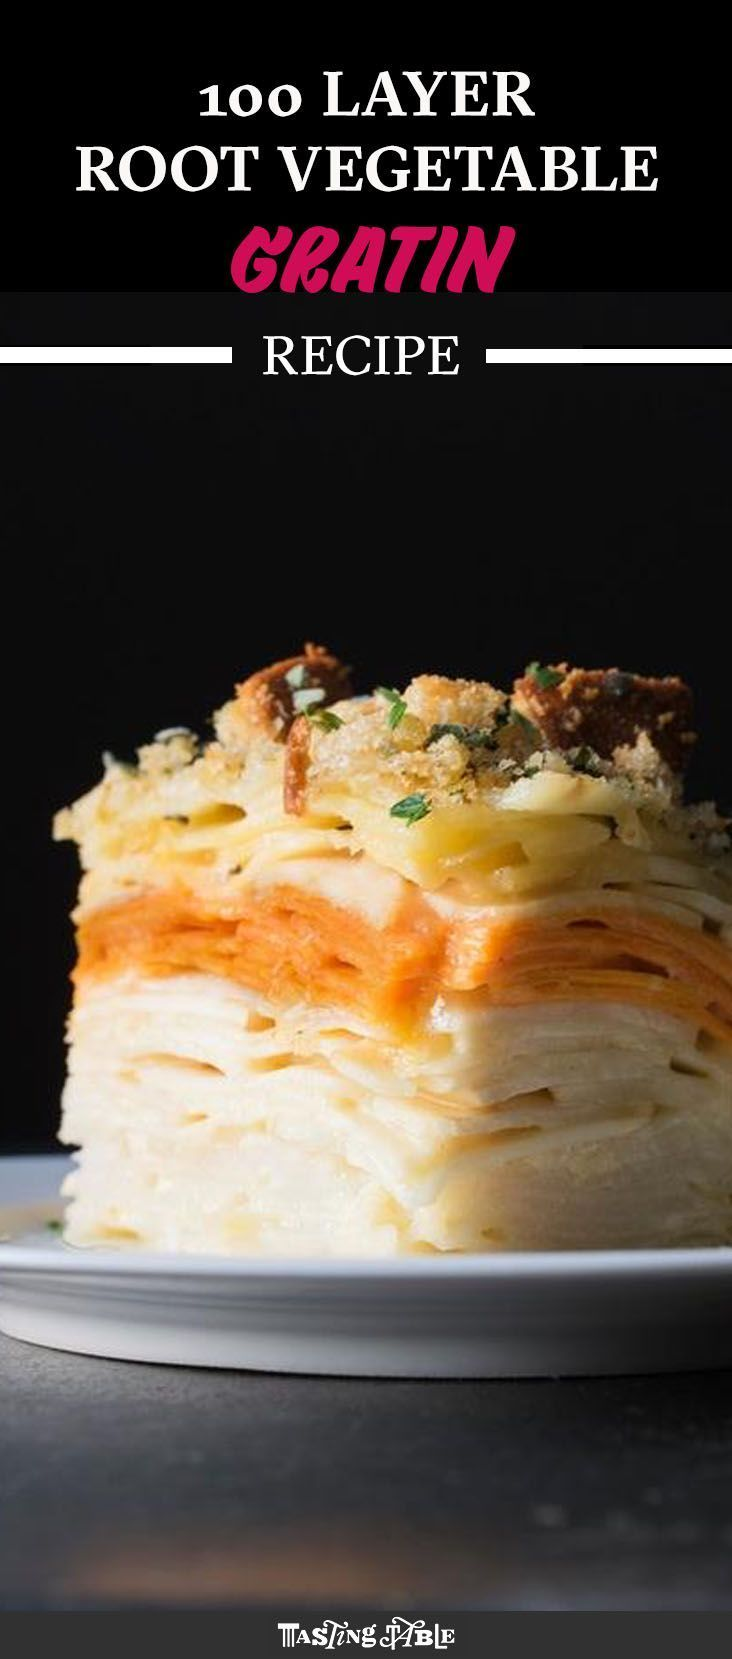 3 types of cheese take this bubbly casserole to the next level